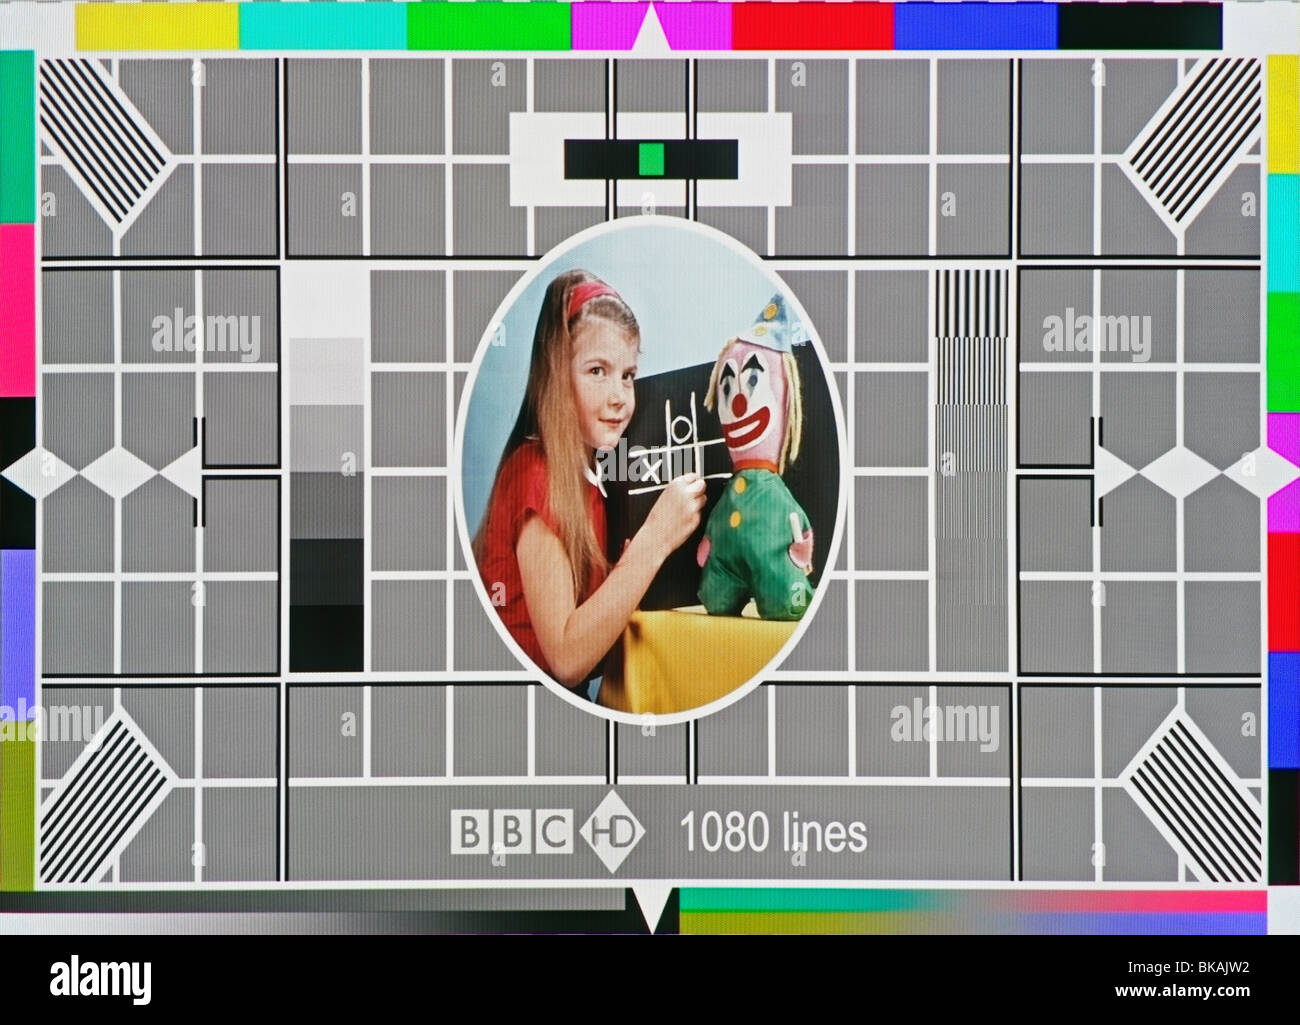 BBC Test Card - Stock Image